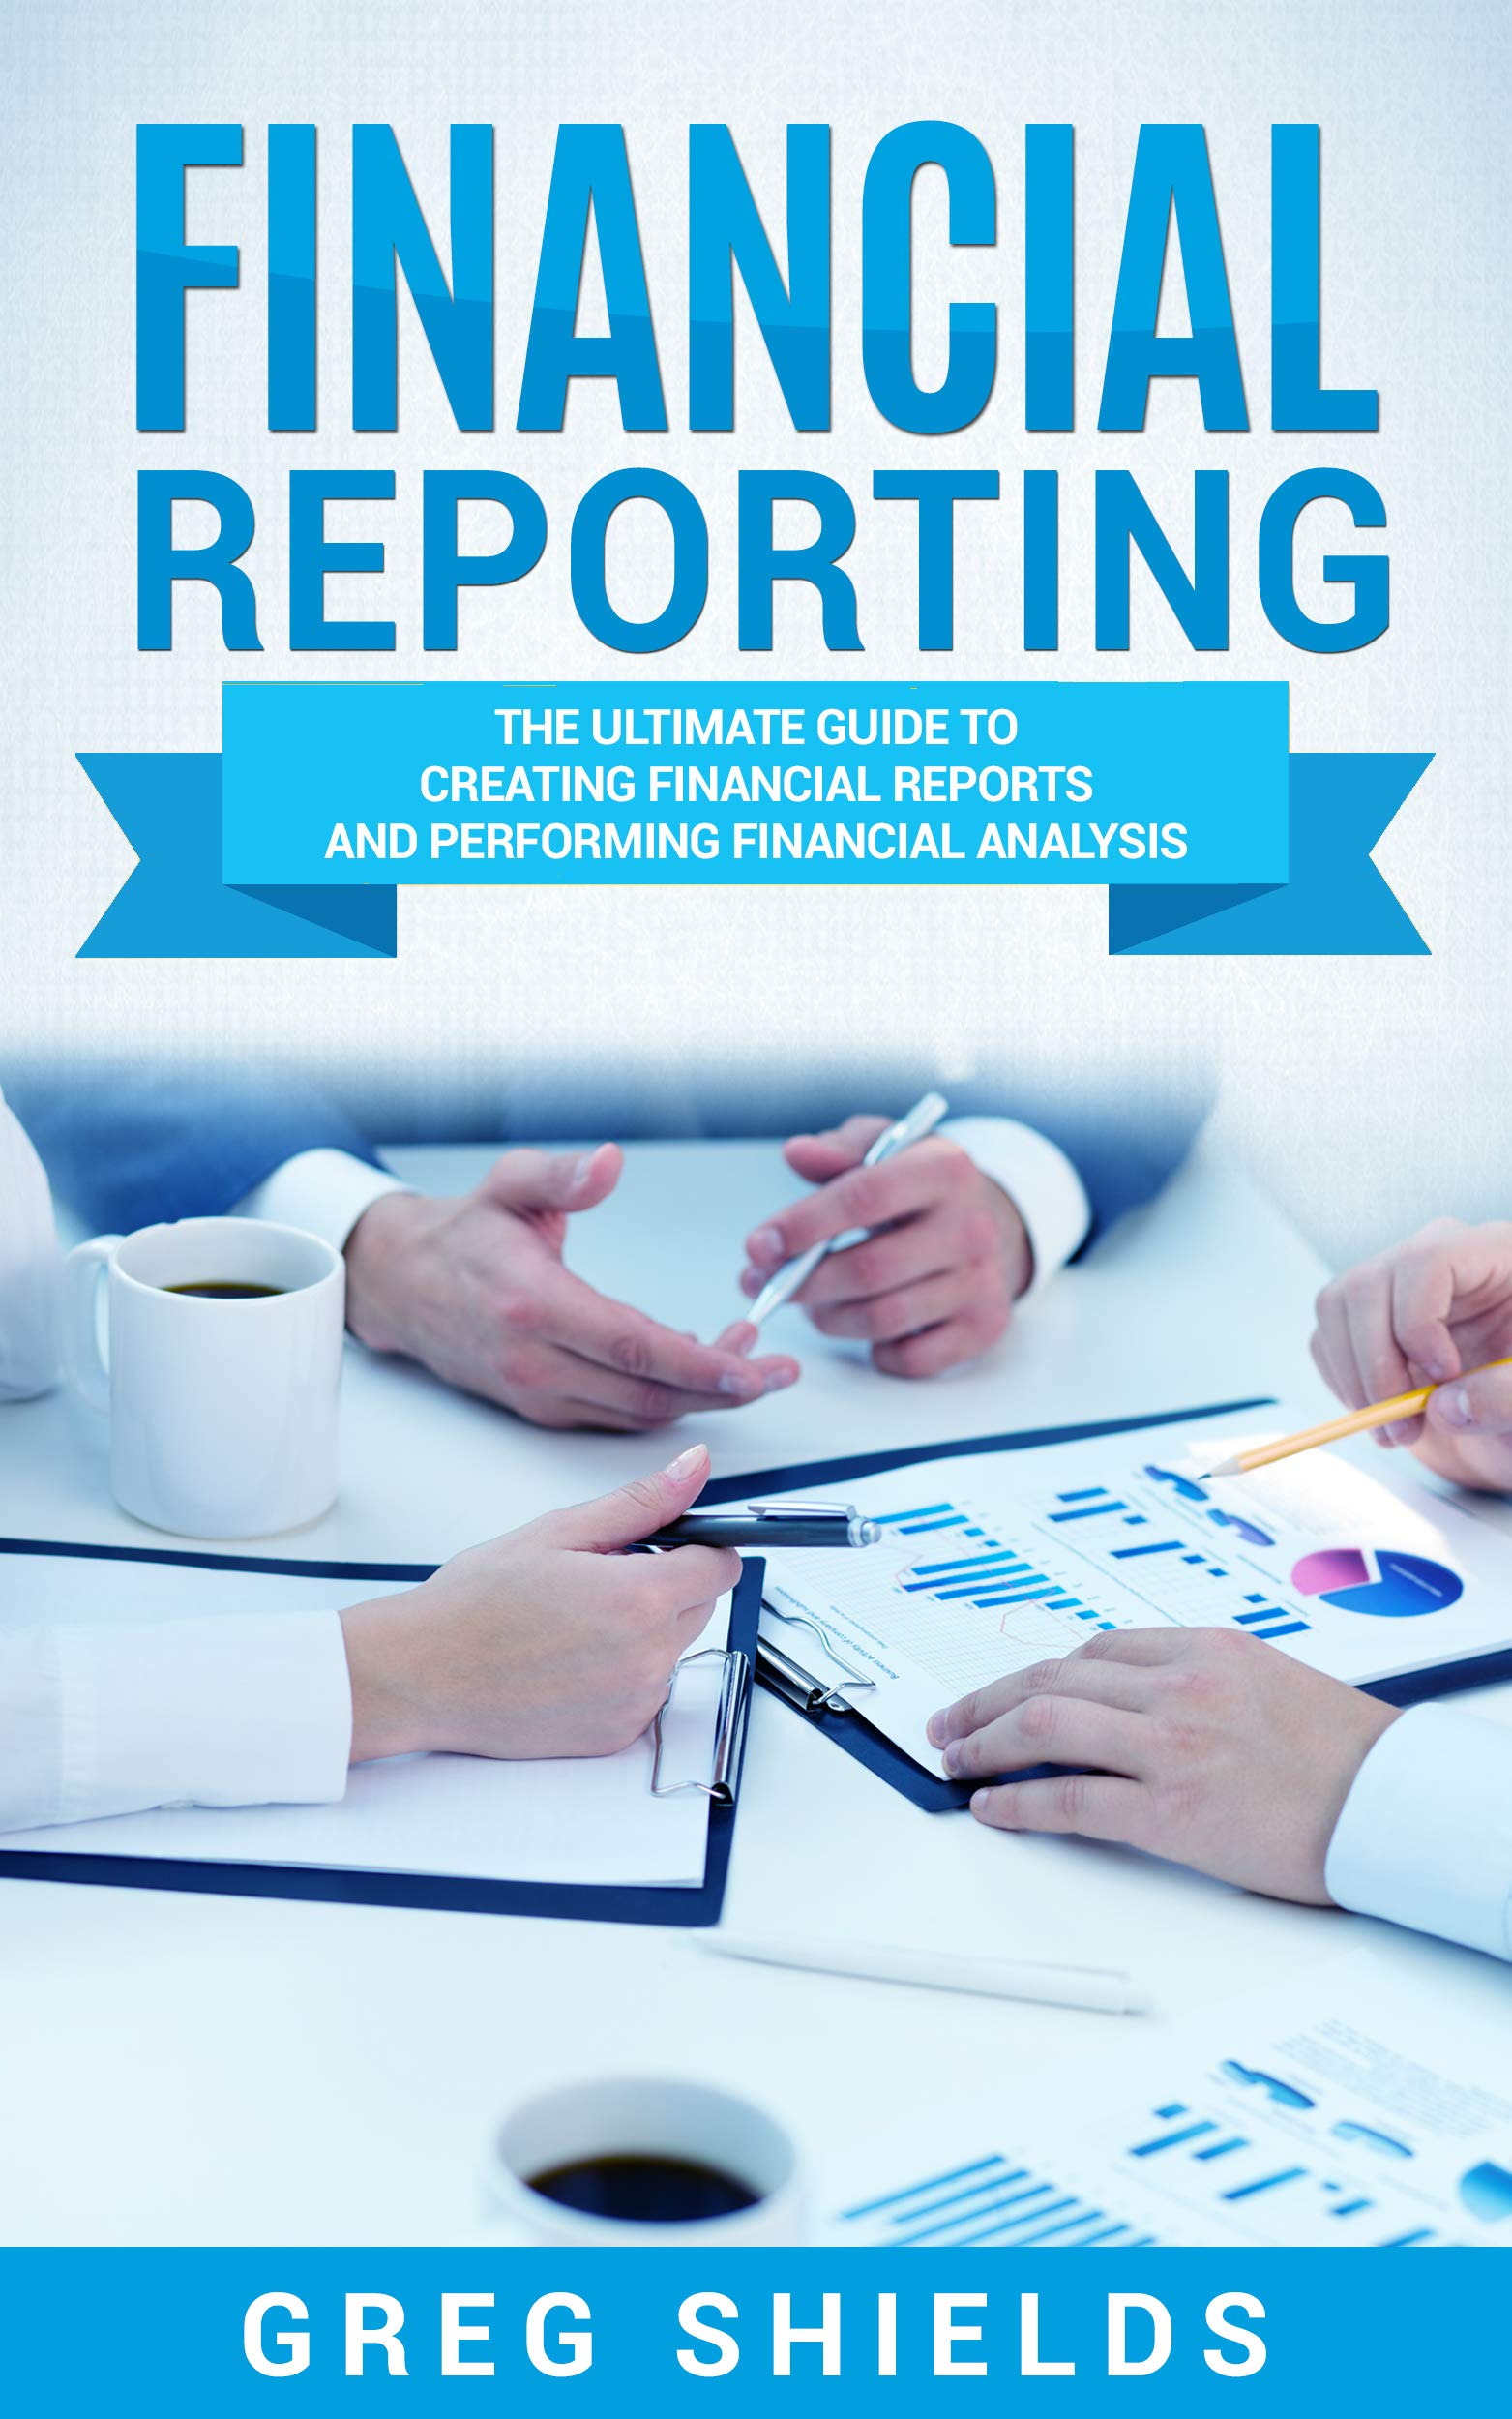 Financial Reporting: The Ultimate Guide to Creating Financial Reports and Performing Financial Analysis